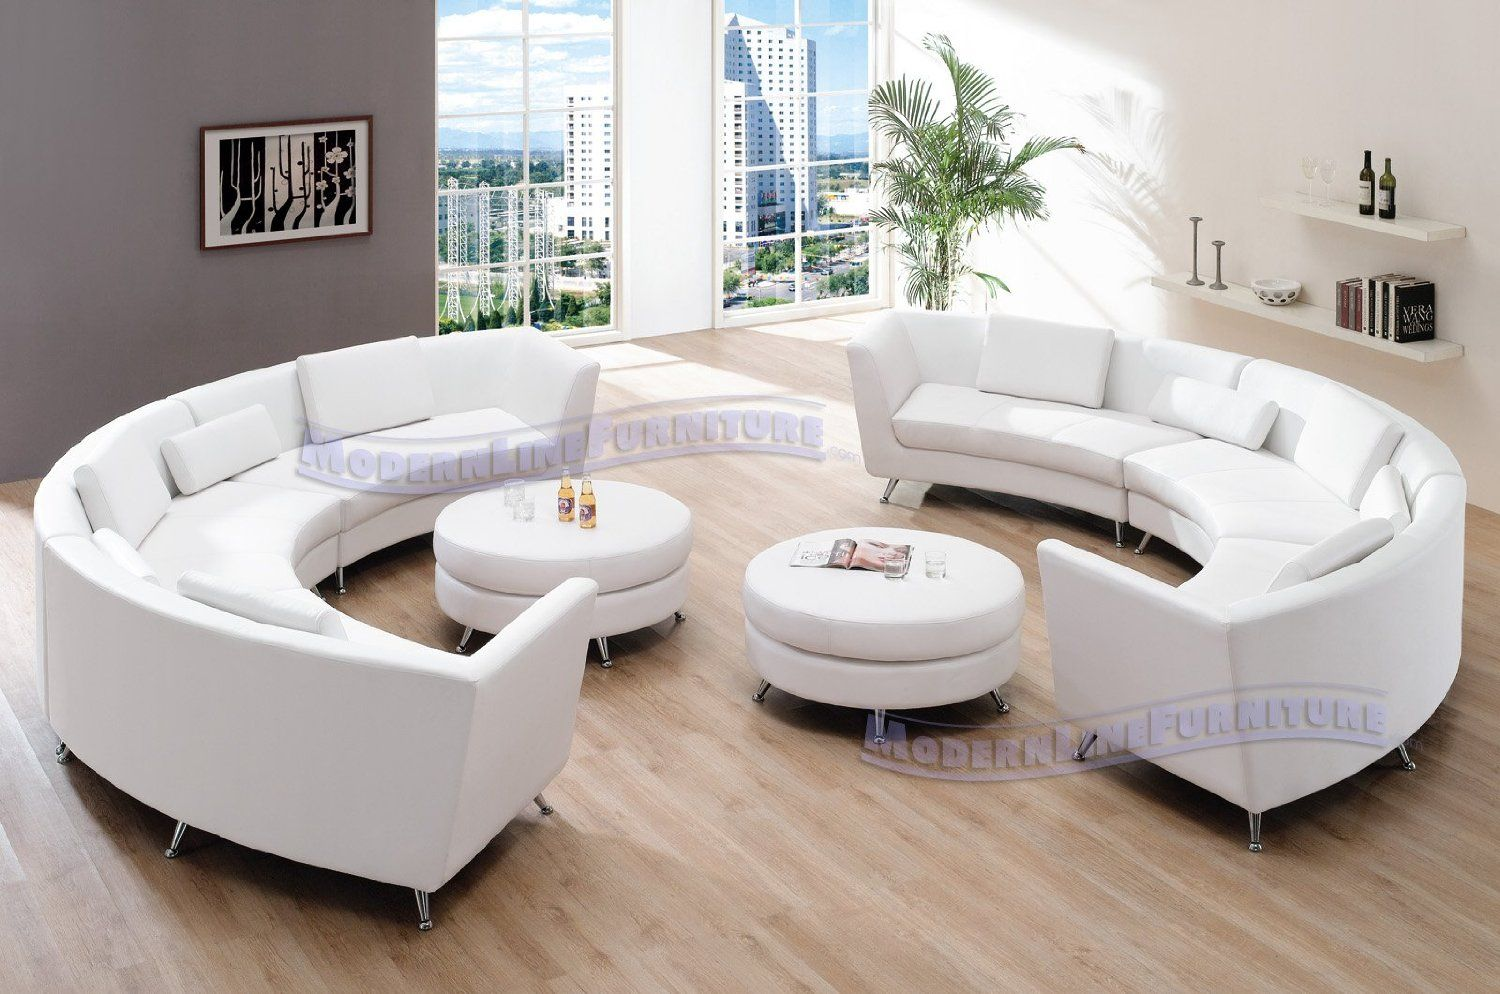 sofa expo vip argos amazon exclusive modern furniture sectional with